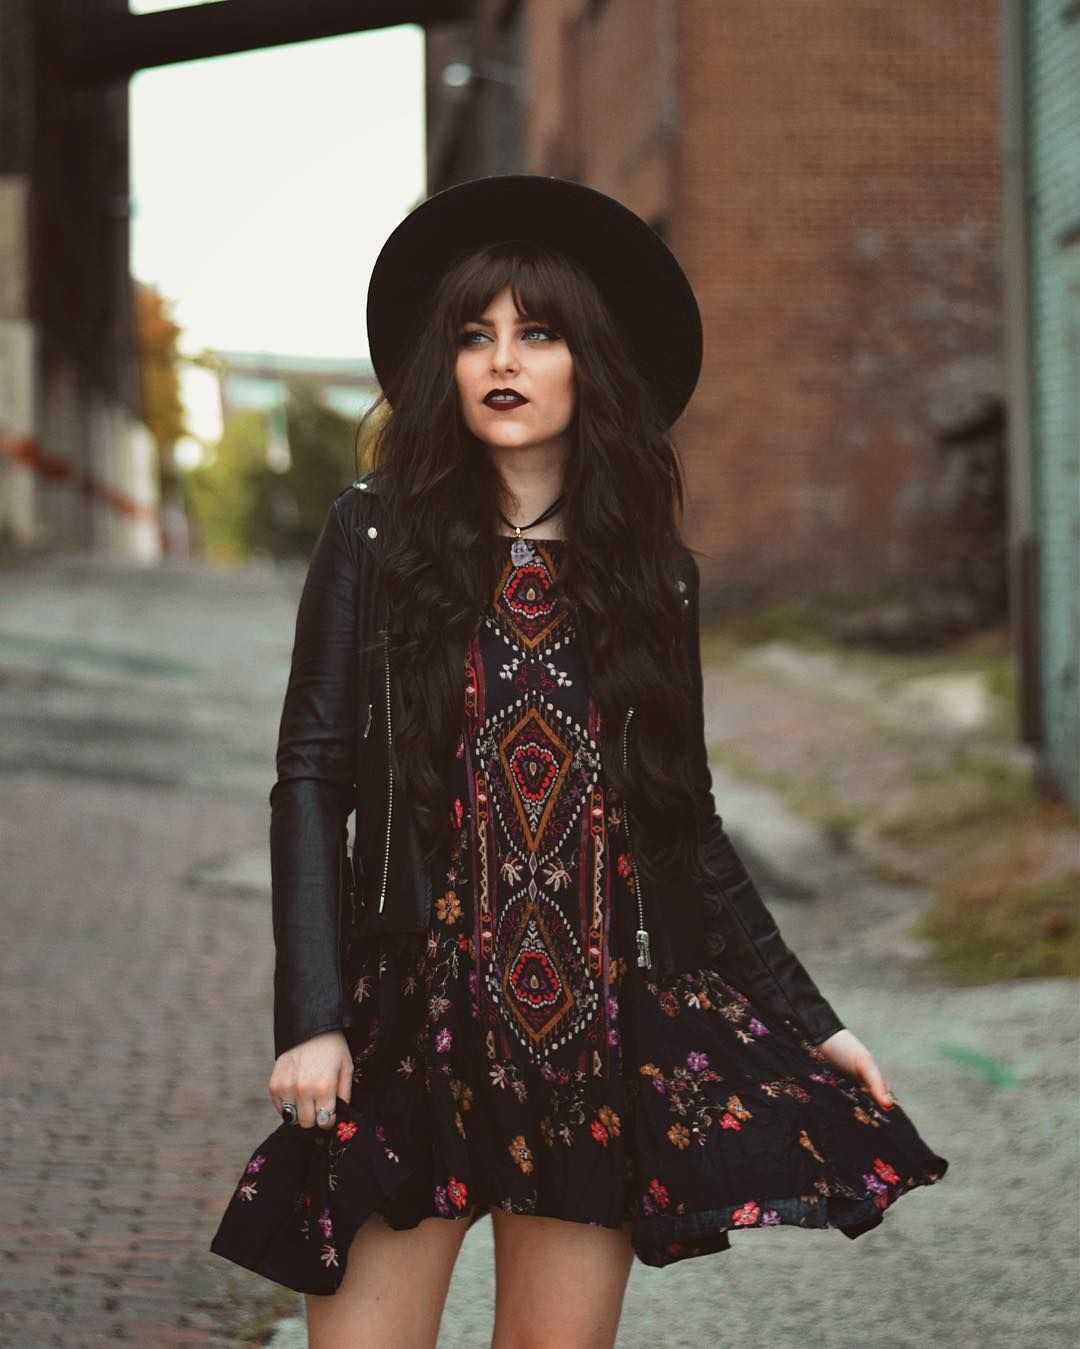 6a9d461fab17 Folksy dress, floppy boho hat, and leather biker jacket paired with dark  lips. Such a cool look!